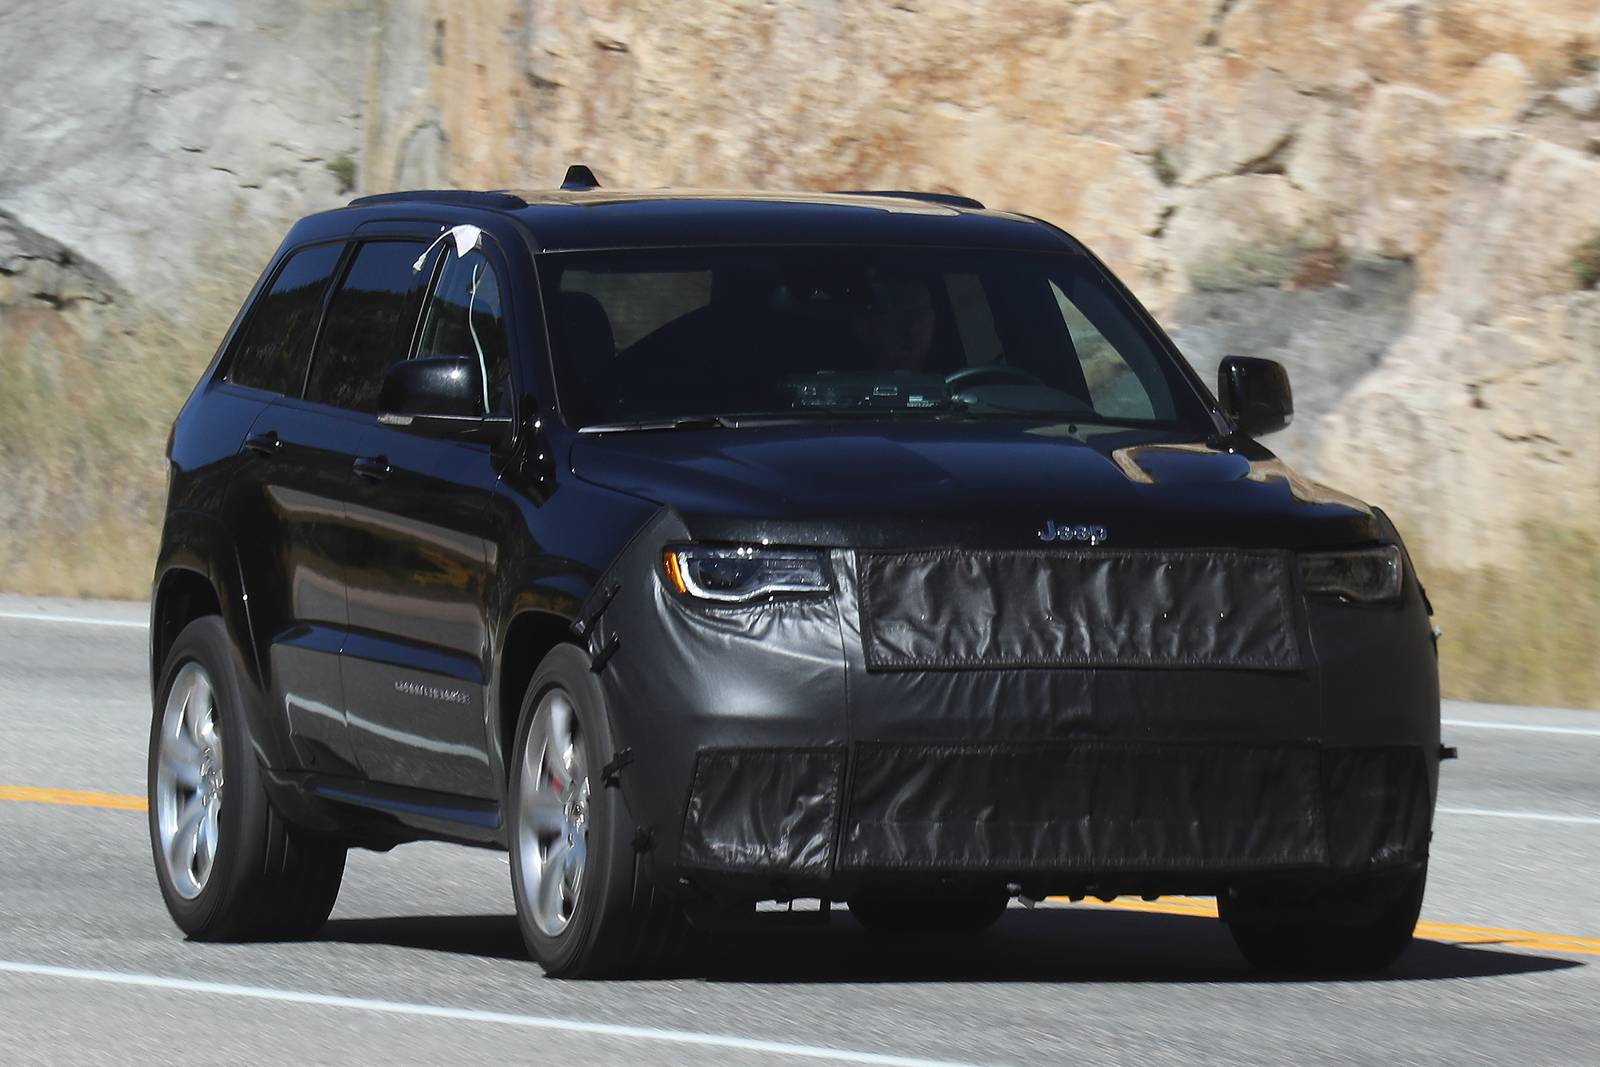 hellcat powered 2018 jeep grand cherokee srt trackhawk latest spy shots gtspirit. Black Bedroom Furniture Sets. Home Design Ideas